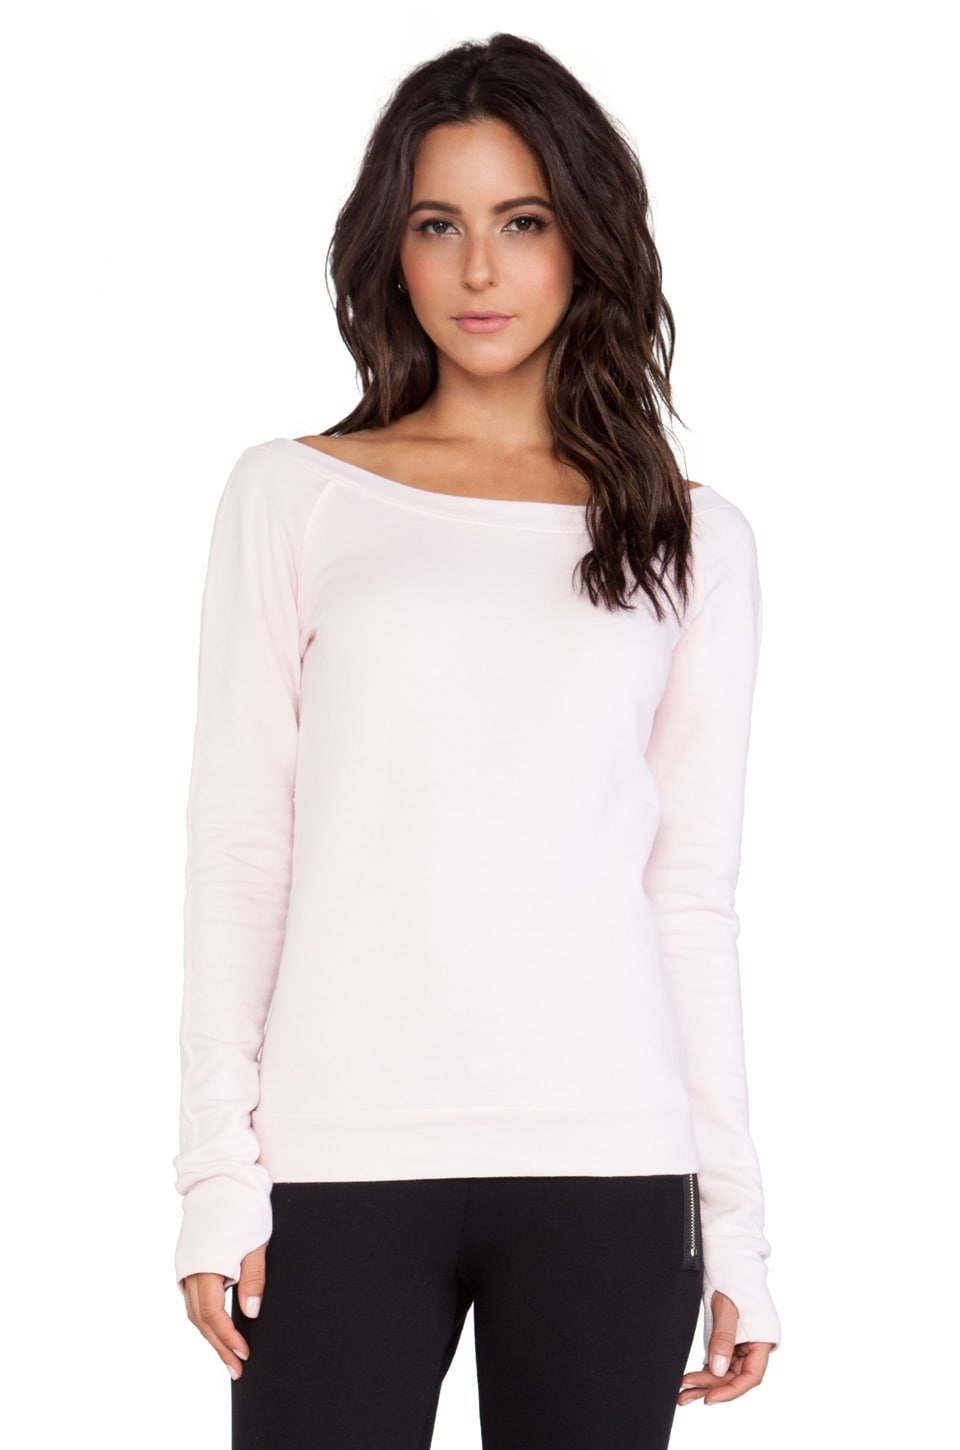 SOLOW So Low Ballet Sweatshirt in Ballet